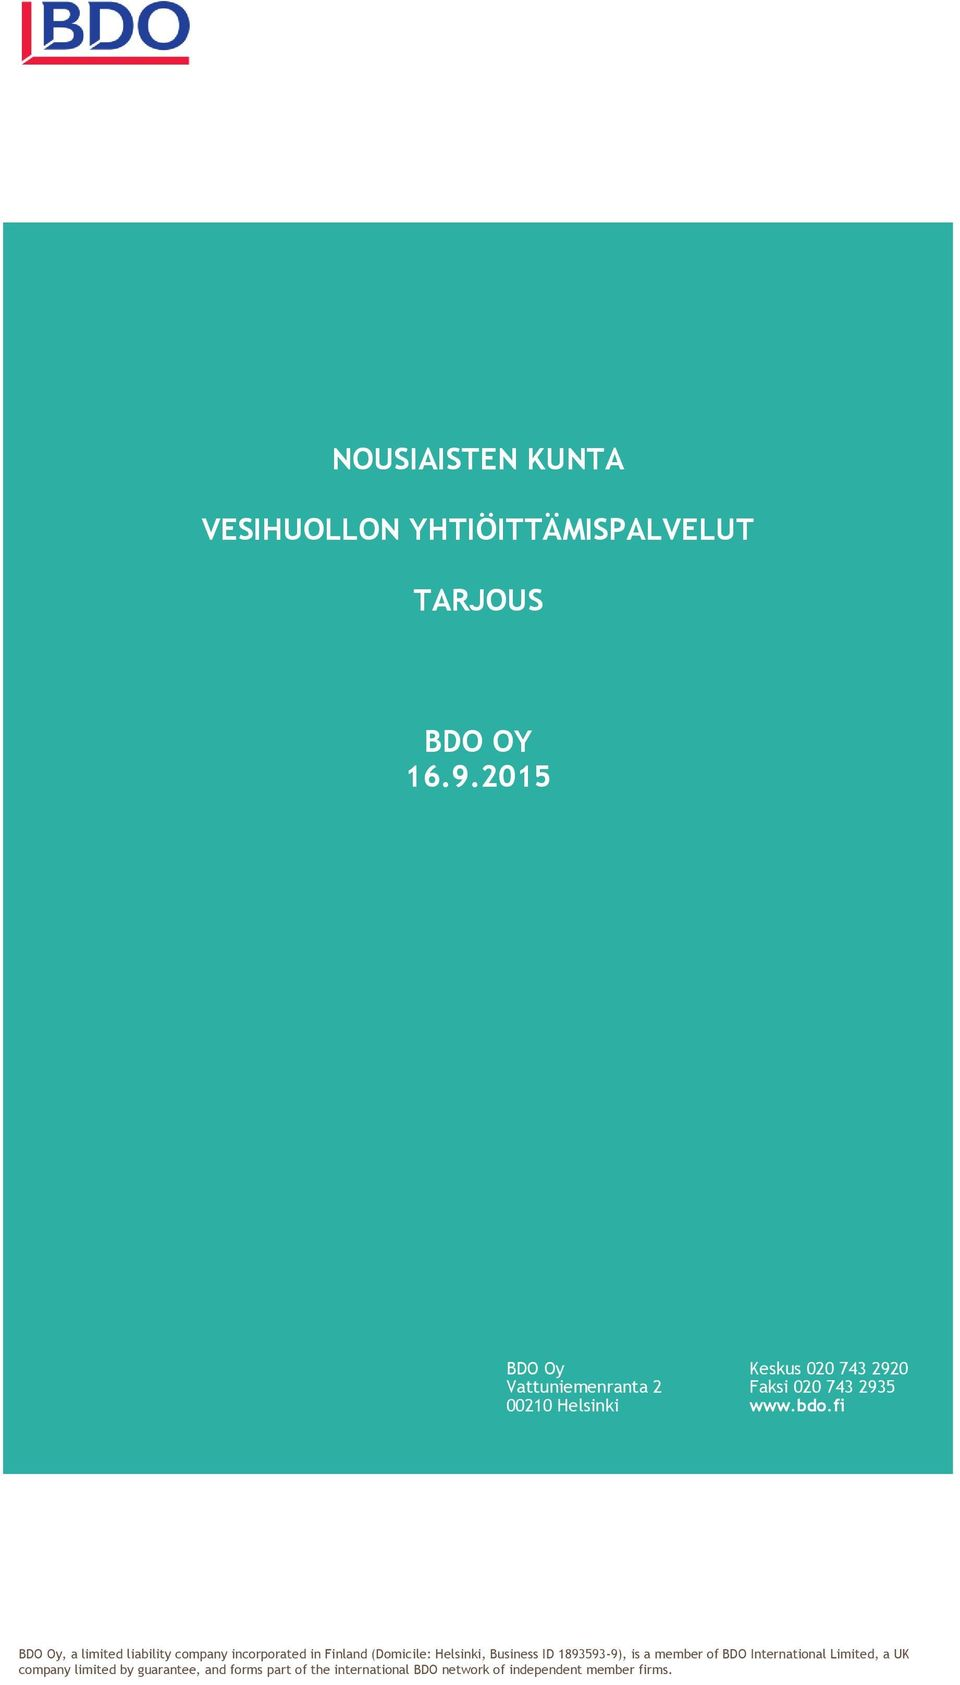 fi BDO Oy, a limited liability cmpany incrprated in Finland (Dmicile: Helsinki, Business ID